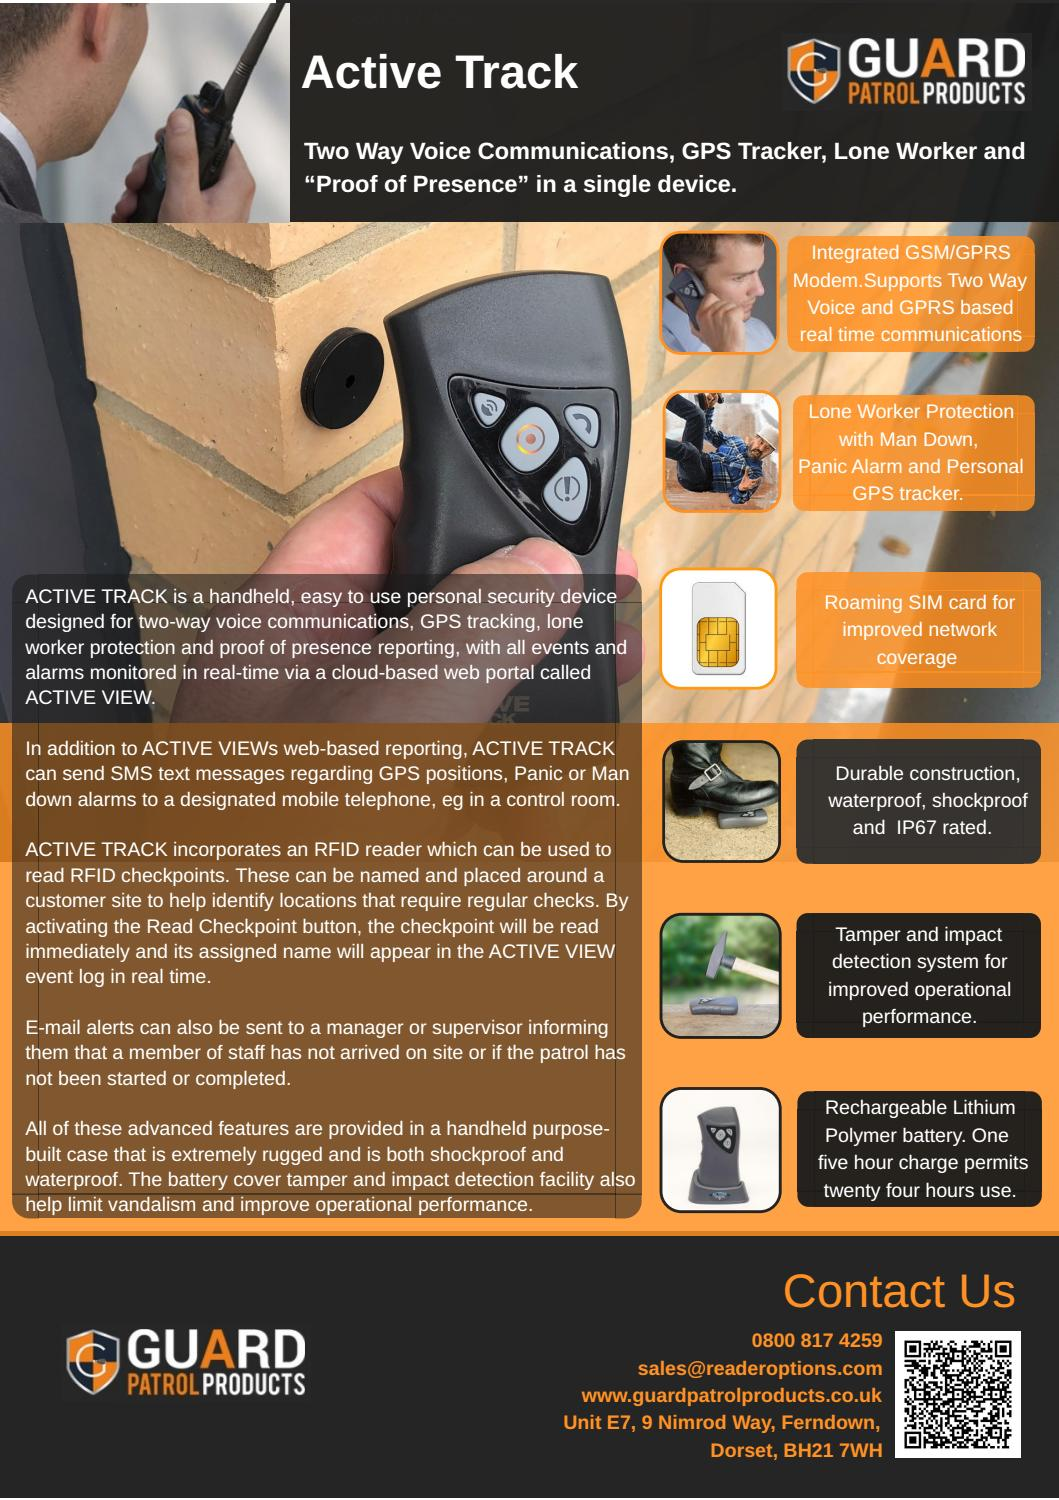 Active Track - Real time Guard Patrol systems by Guard